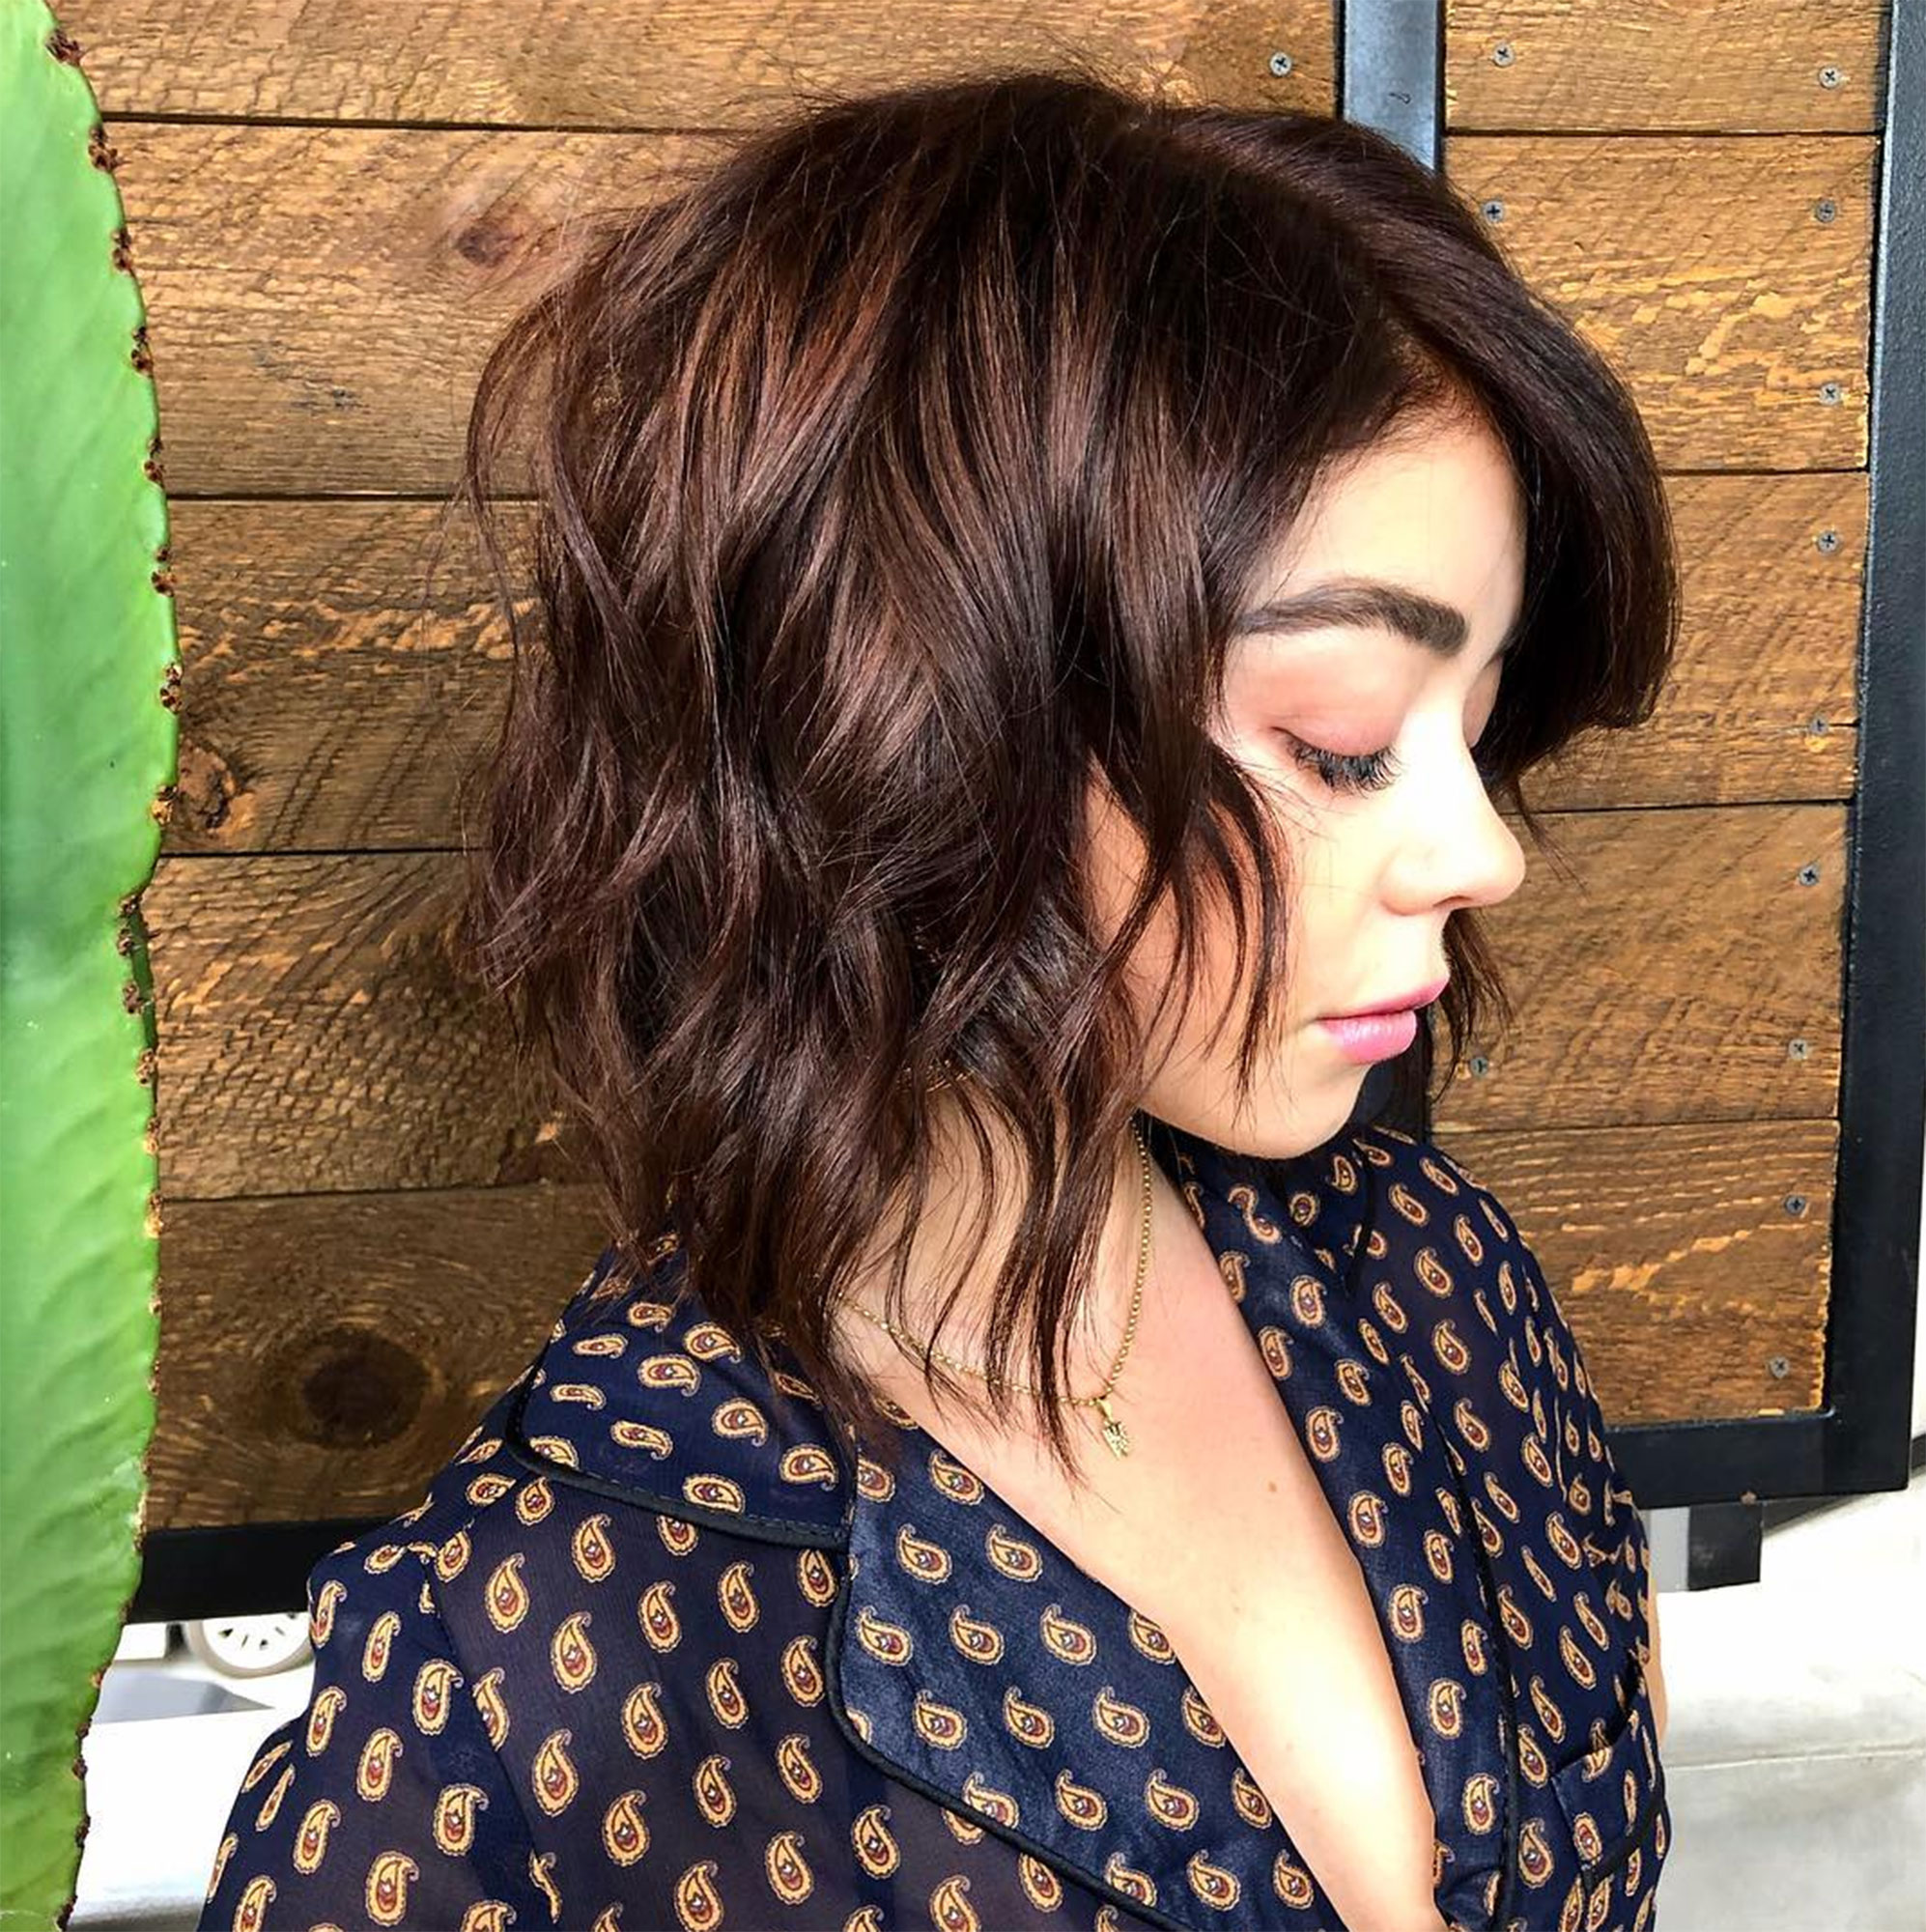 """Sarah Hyland Celebs Are Here With All the Coachella Beauty Inspo You Need - The Modern Family star debuted a choppy new 'do on March 22 that her mane woman Nikki Lee described as """"shagged auburn."""" """"Sarah's embracing her natural texture and length,"""" Lee tells Us . """"This look is perfect for festival season and looks best on naturally curly or wavy hair."""""""